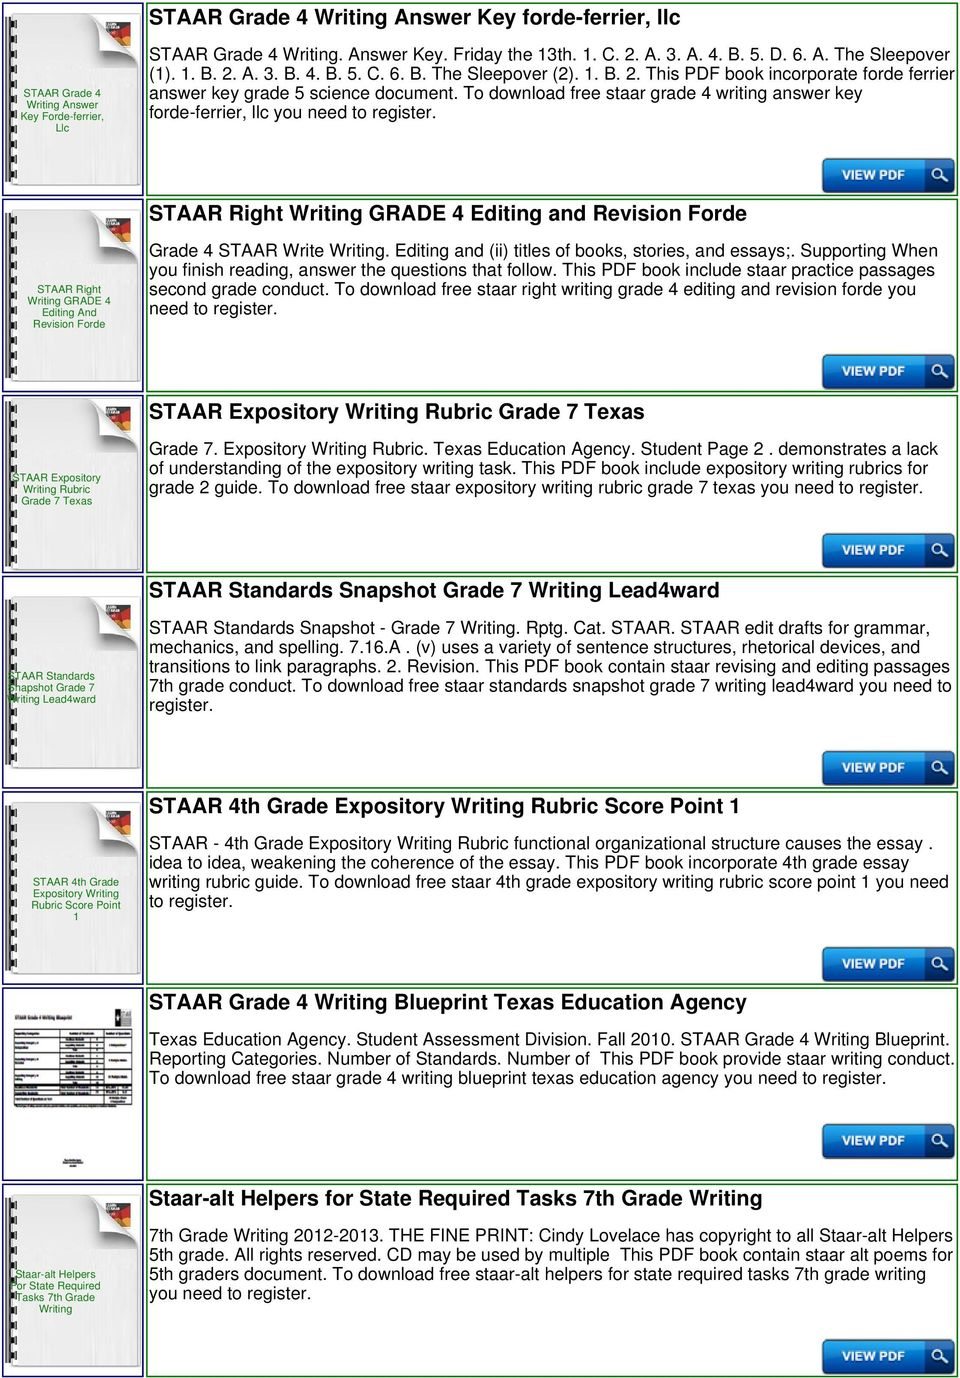 th grade staar writing lined paper pdf to staar grade 4 writing answer key forde ferrier llc you need